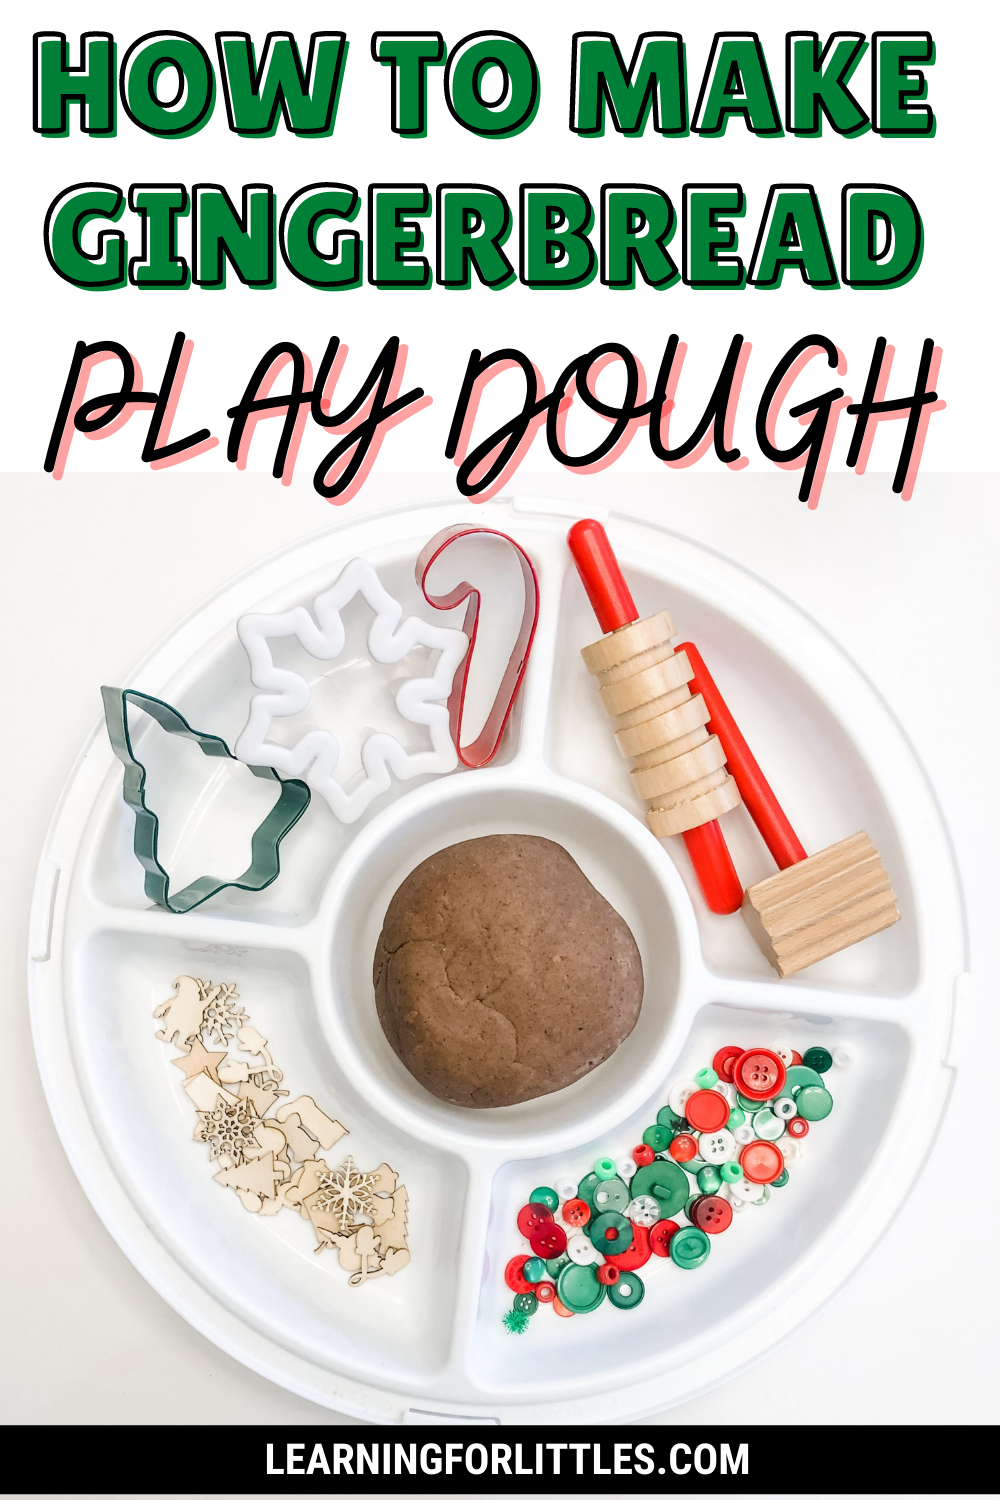 How to Make Gingerbread Play Dough